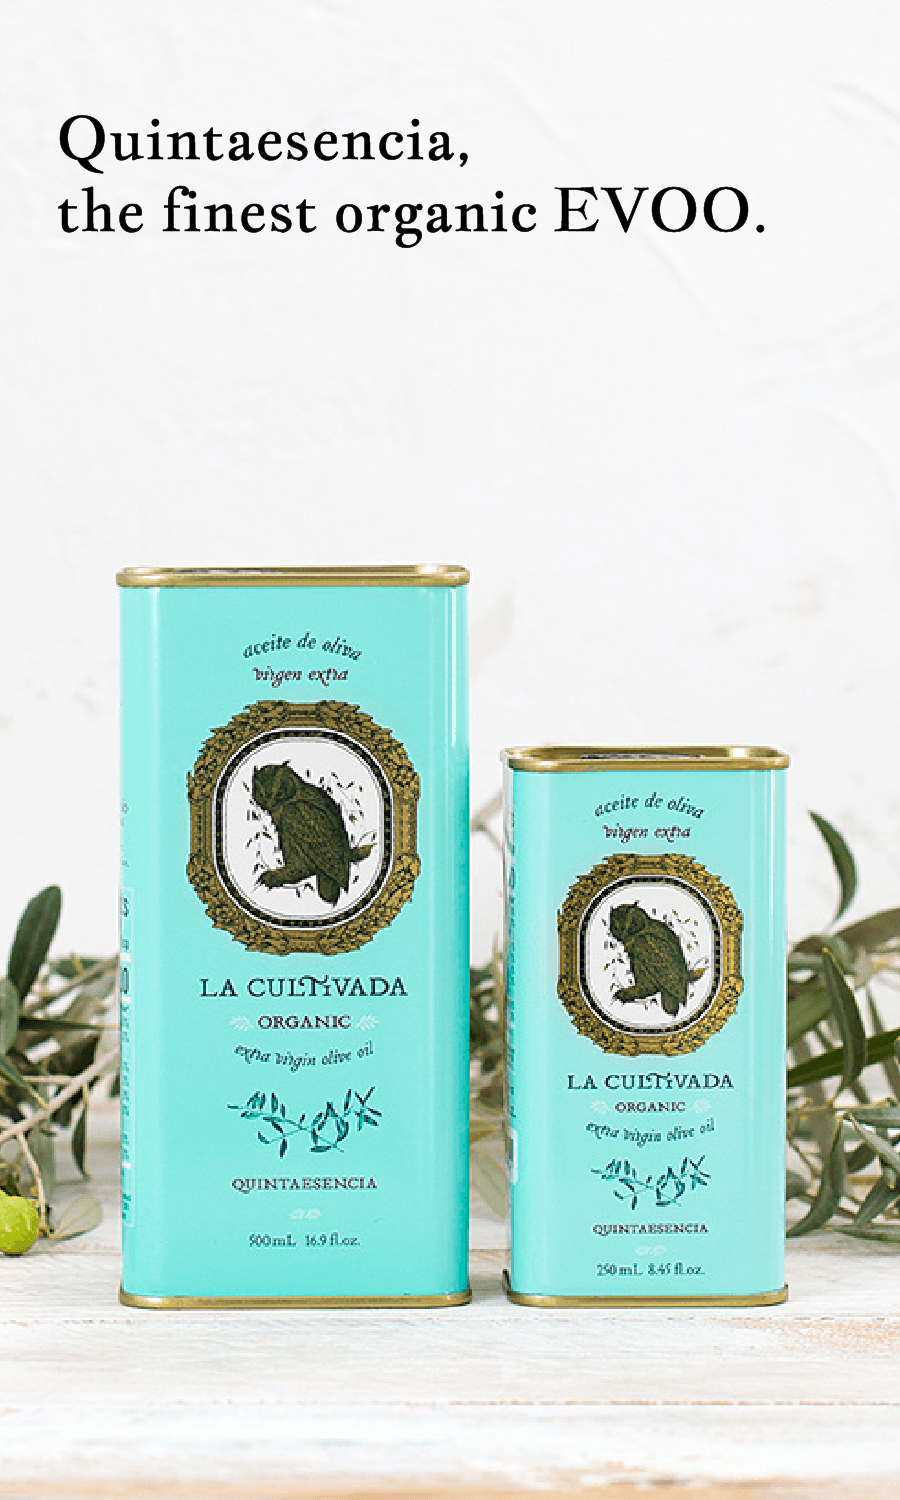 La Cultivada Extra Virgin Olive Oil  organic surrounded by olives